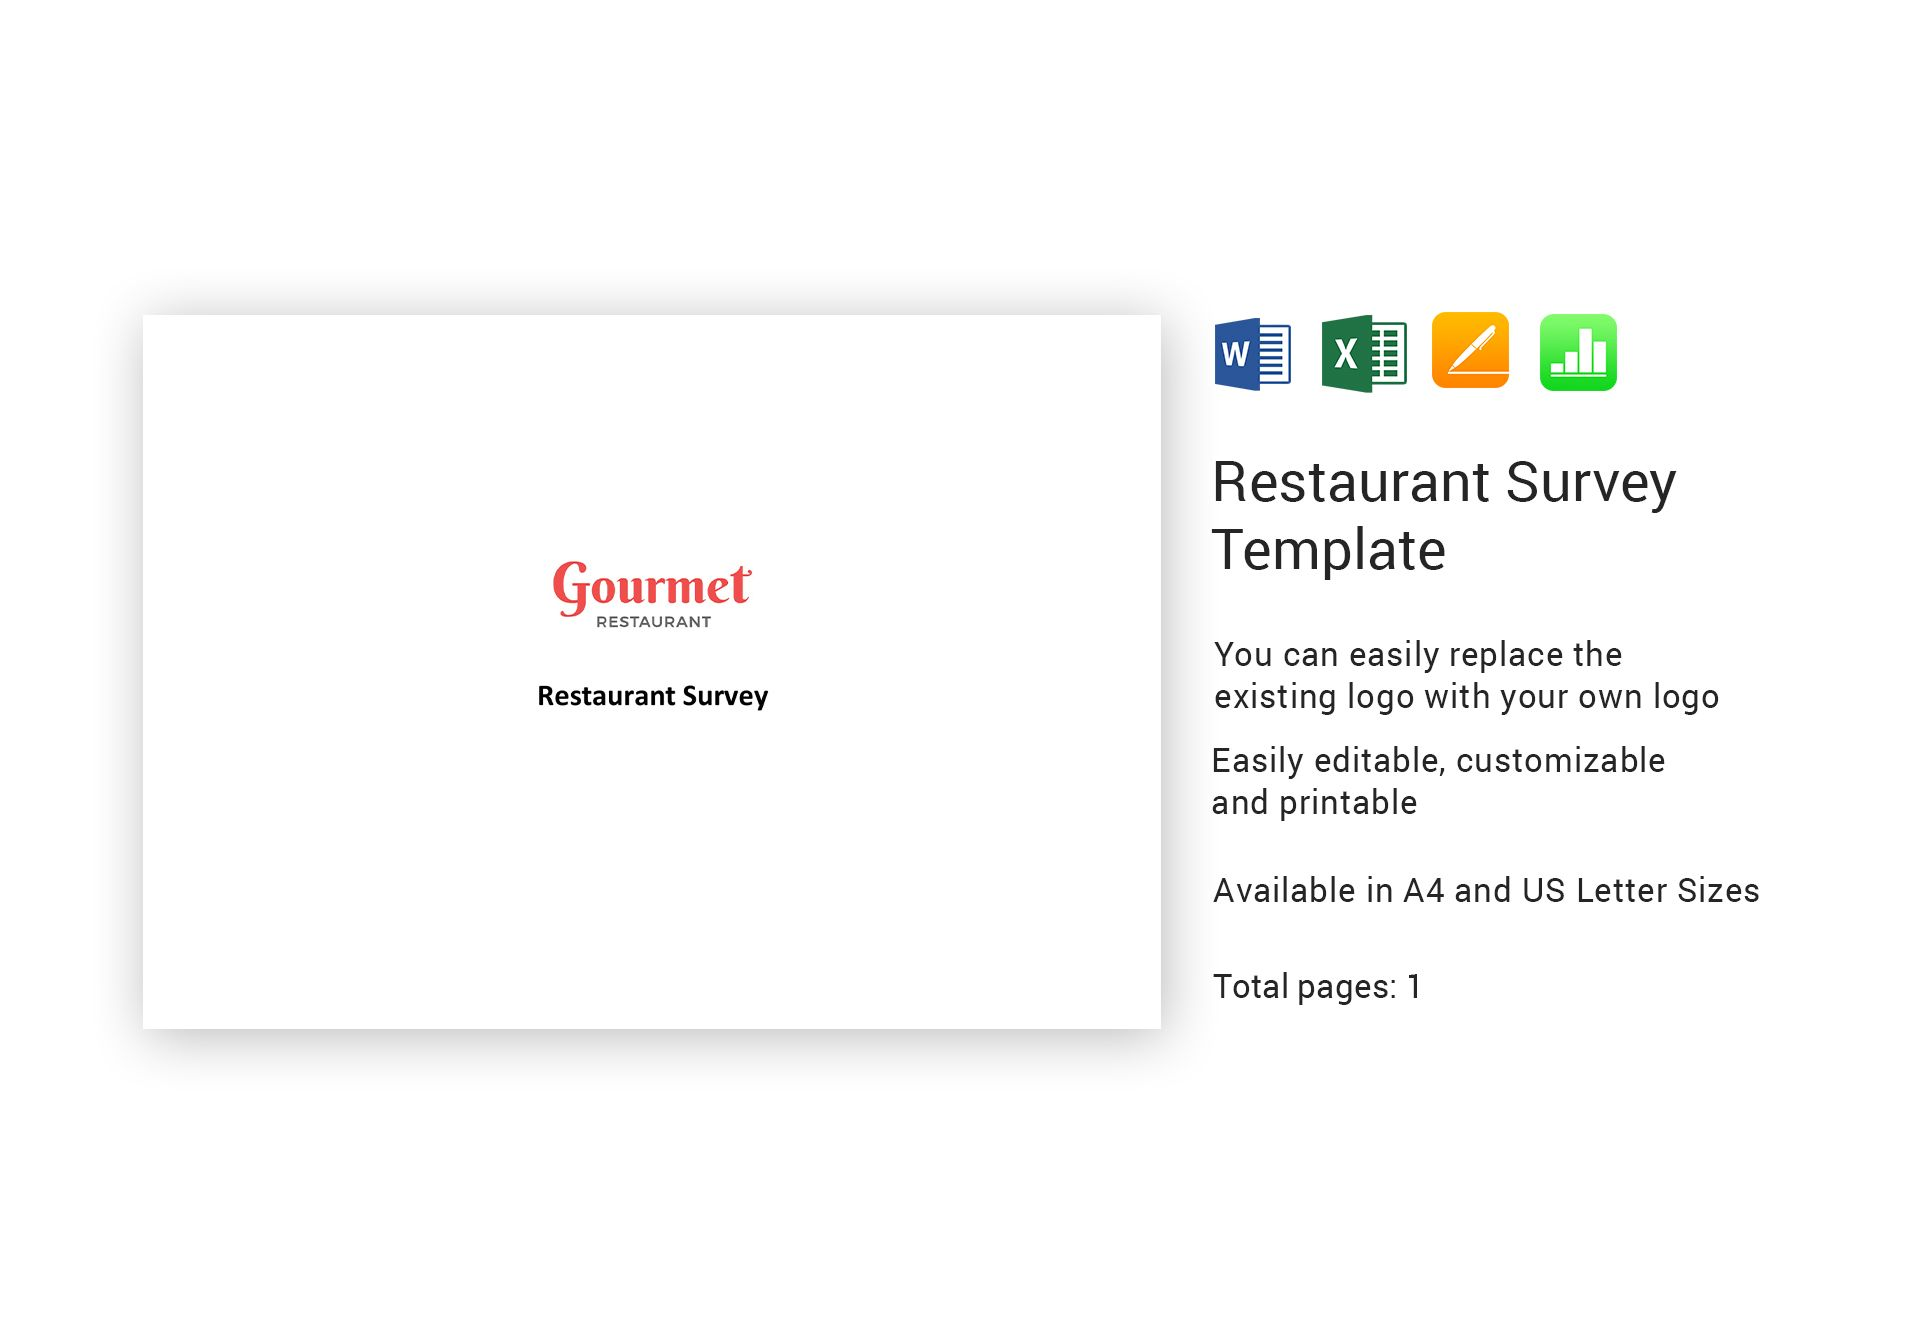 Restaurant Survey